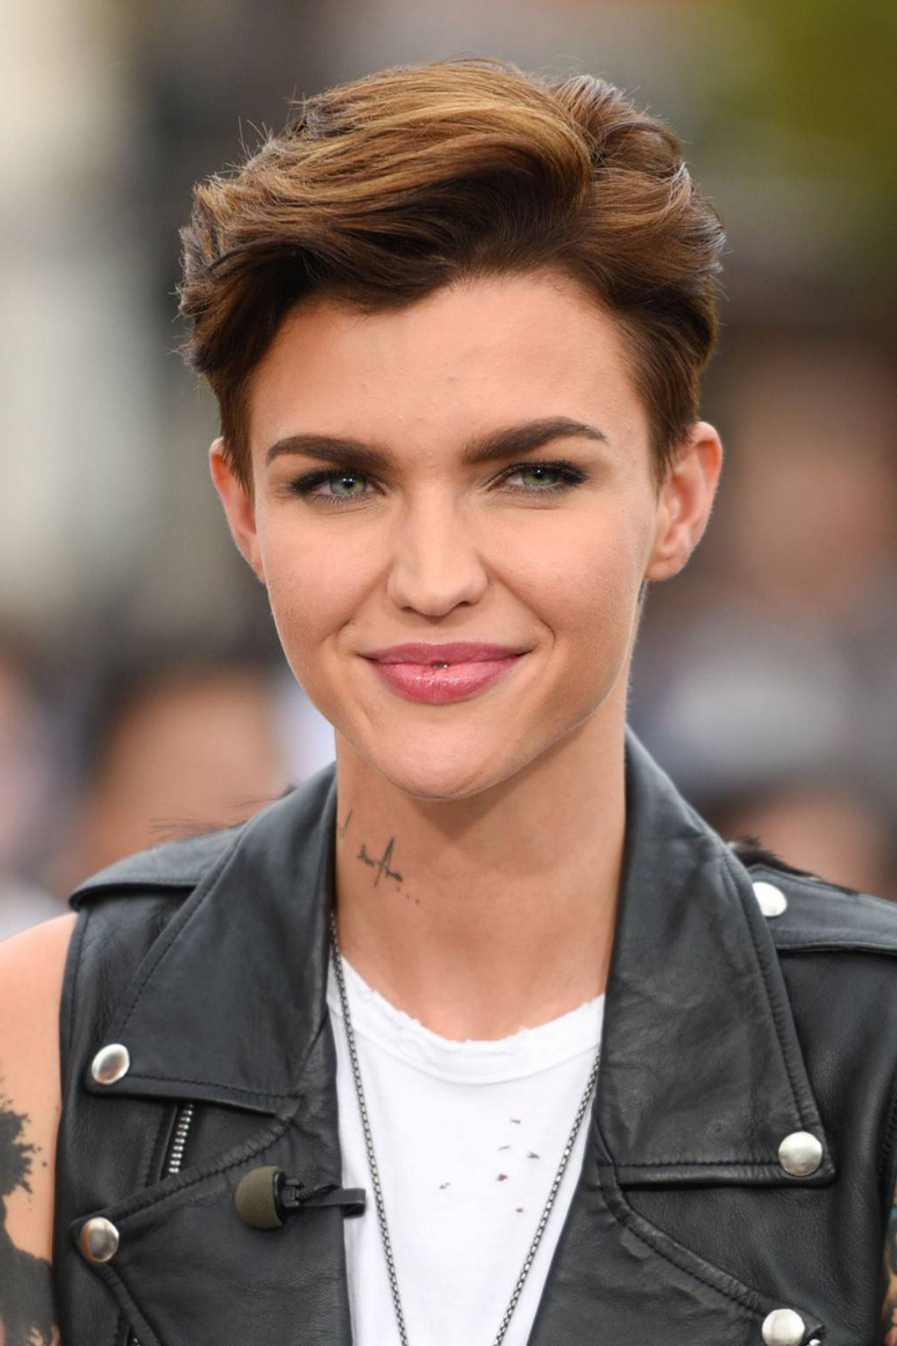 Ruby Rose Hairstyles | Best Hairstyles And Haircuts For Women And Men Pertaining To Ruby Rose Short Hairstyles (View 21 of 25)